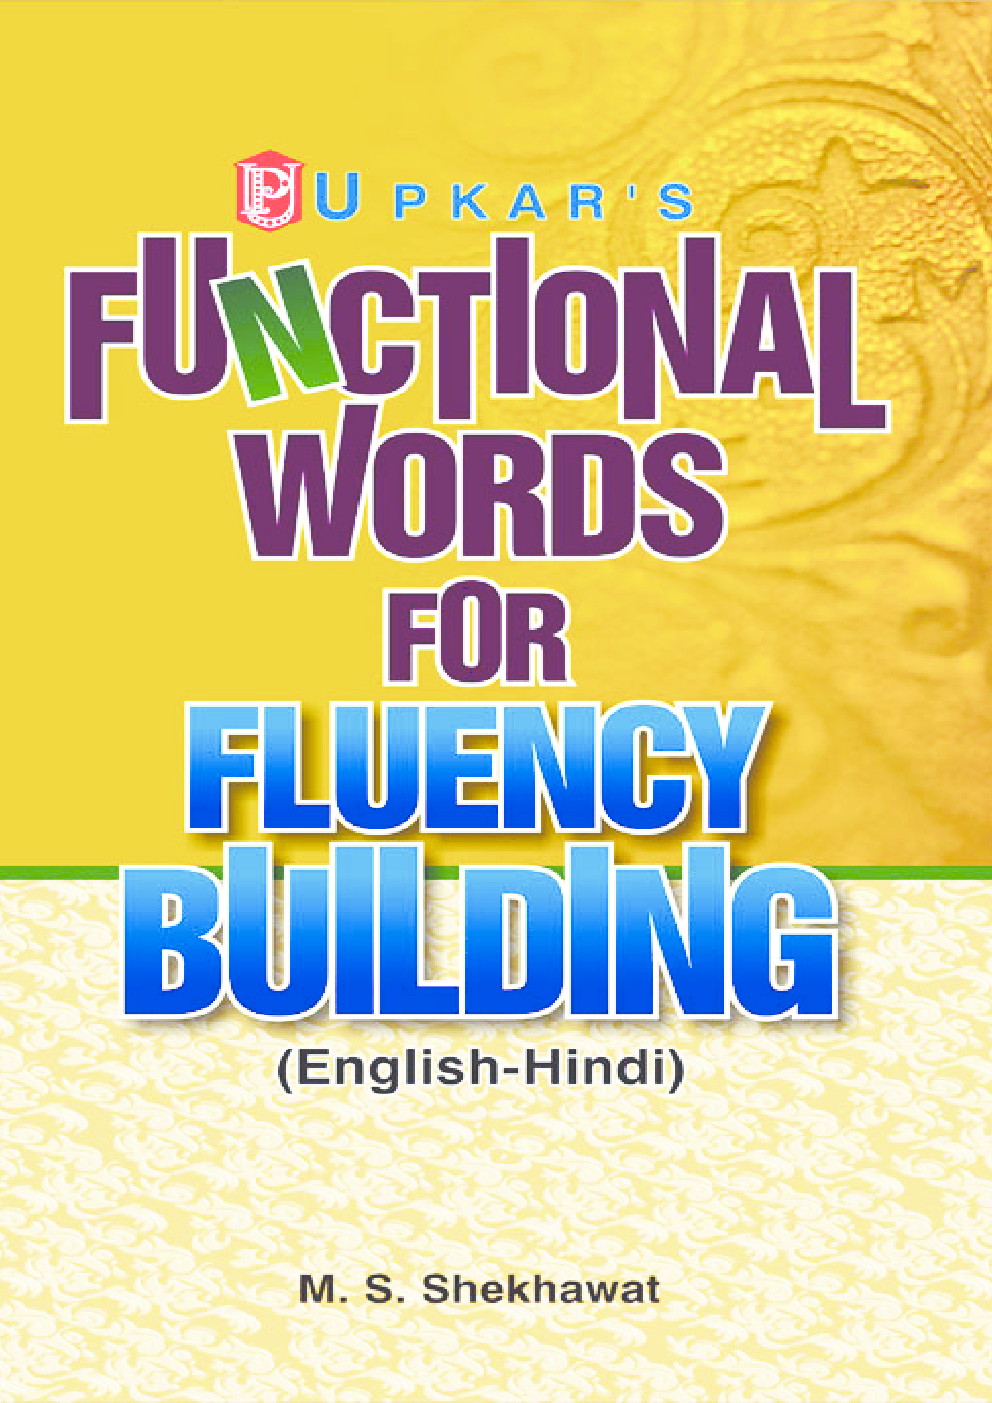 Functional Words for Fluency Building (Eng.-Hindi) - Page 1